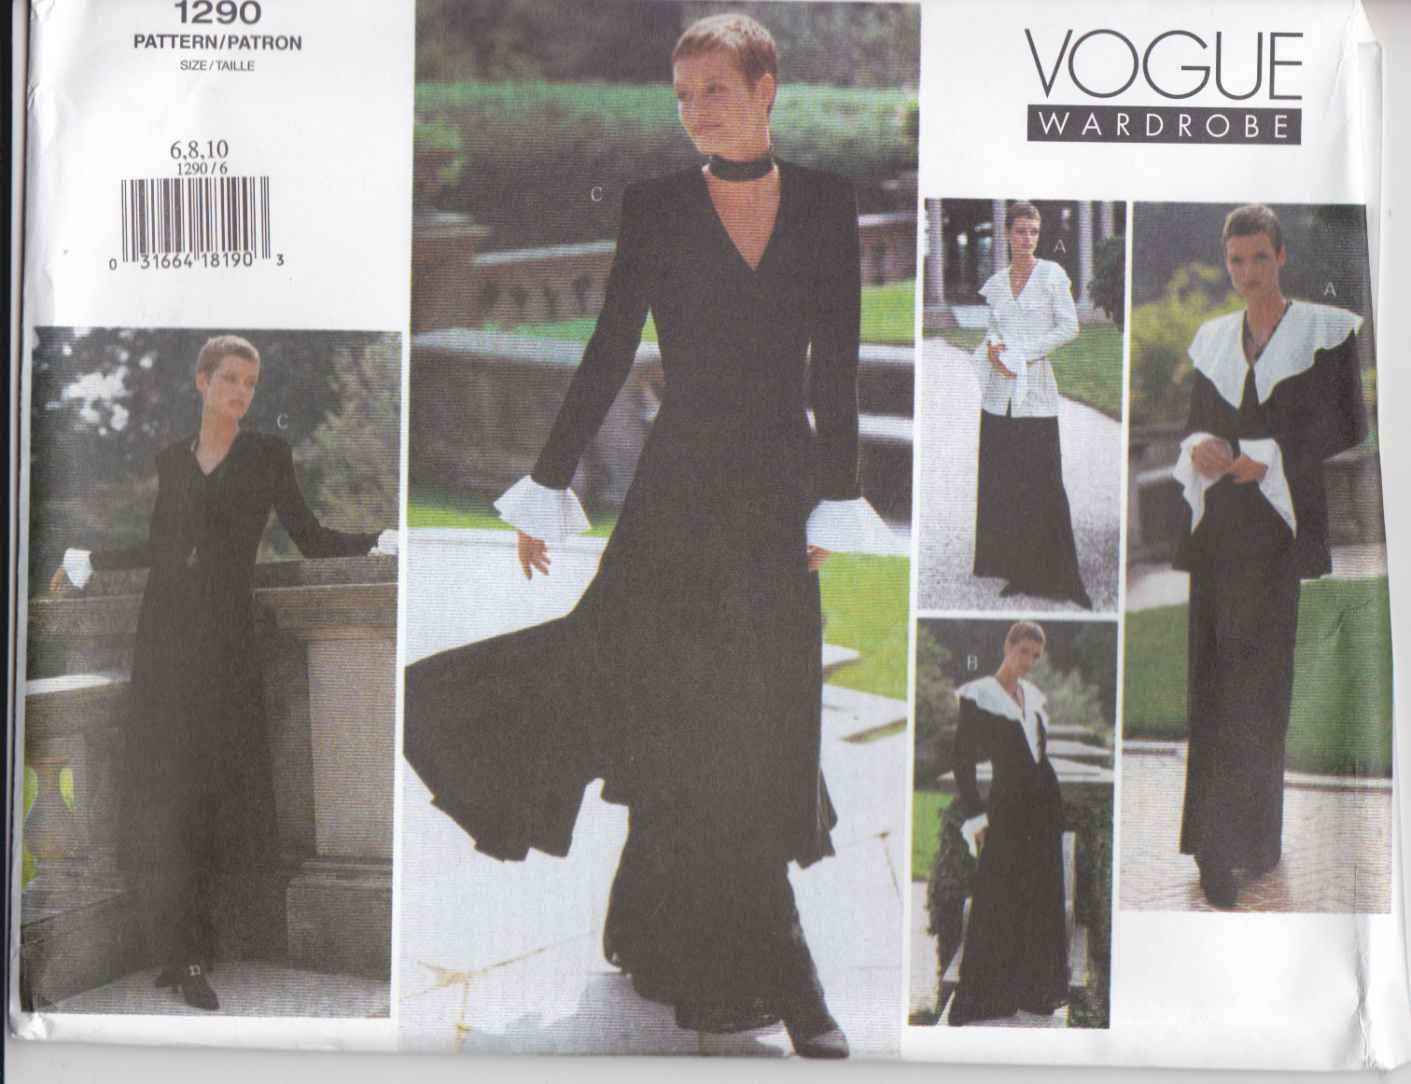 Vogue Sewing Pattern 1290 Misses Size 18-22 Easy Wardrobe Jacket Dress Top Pants